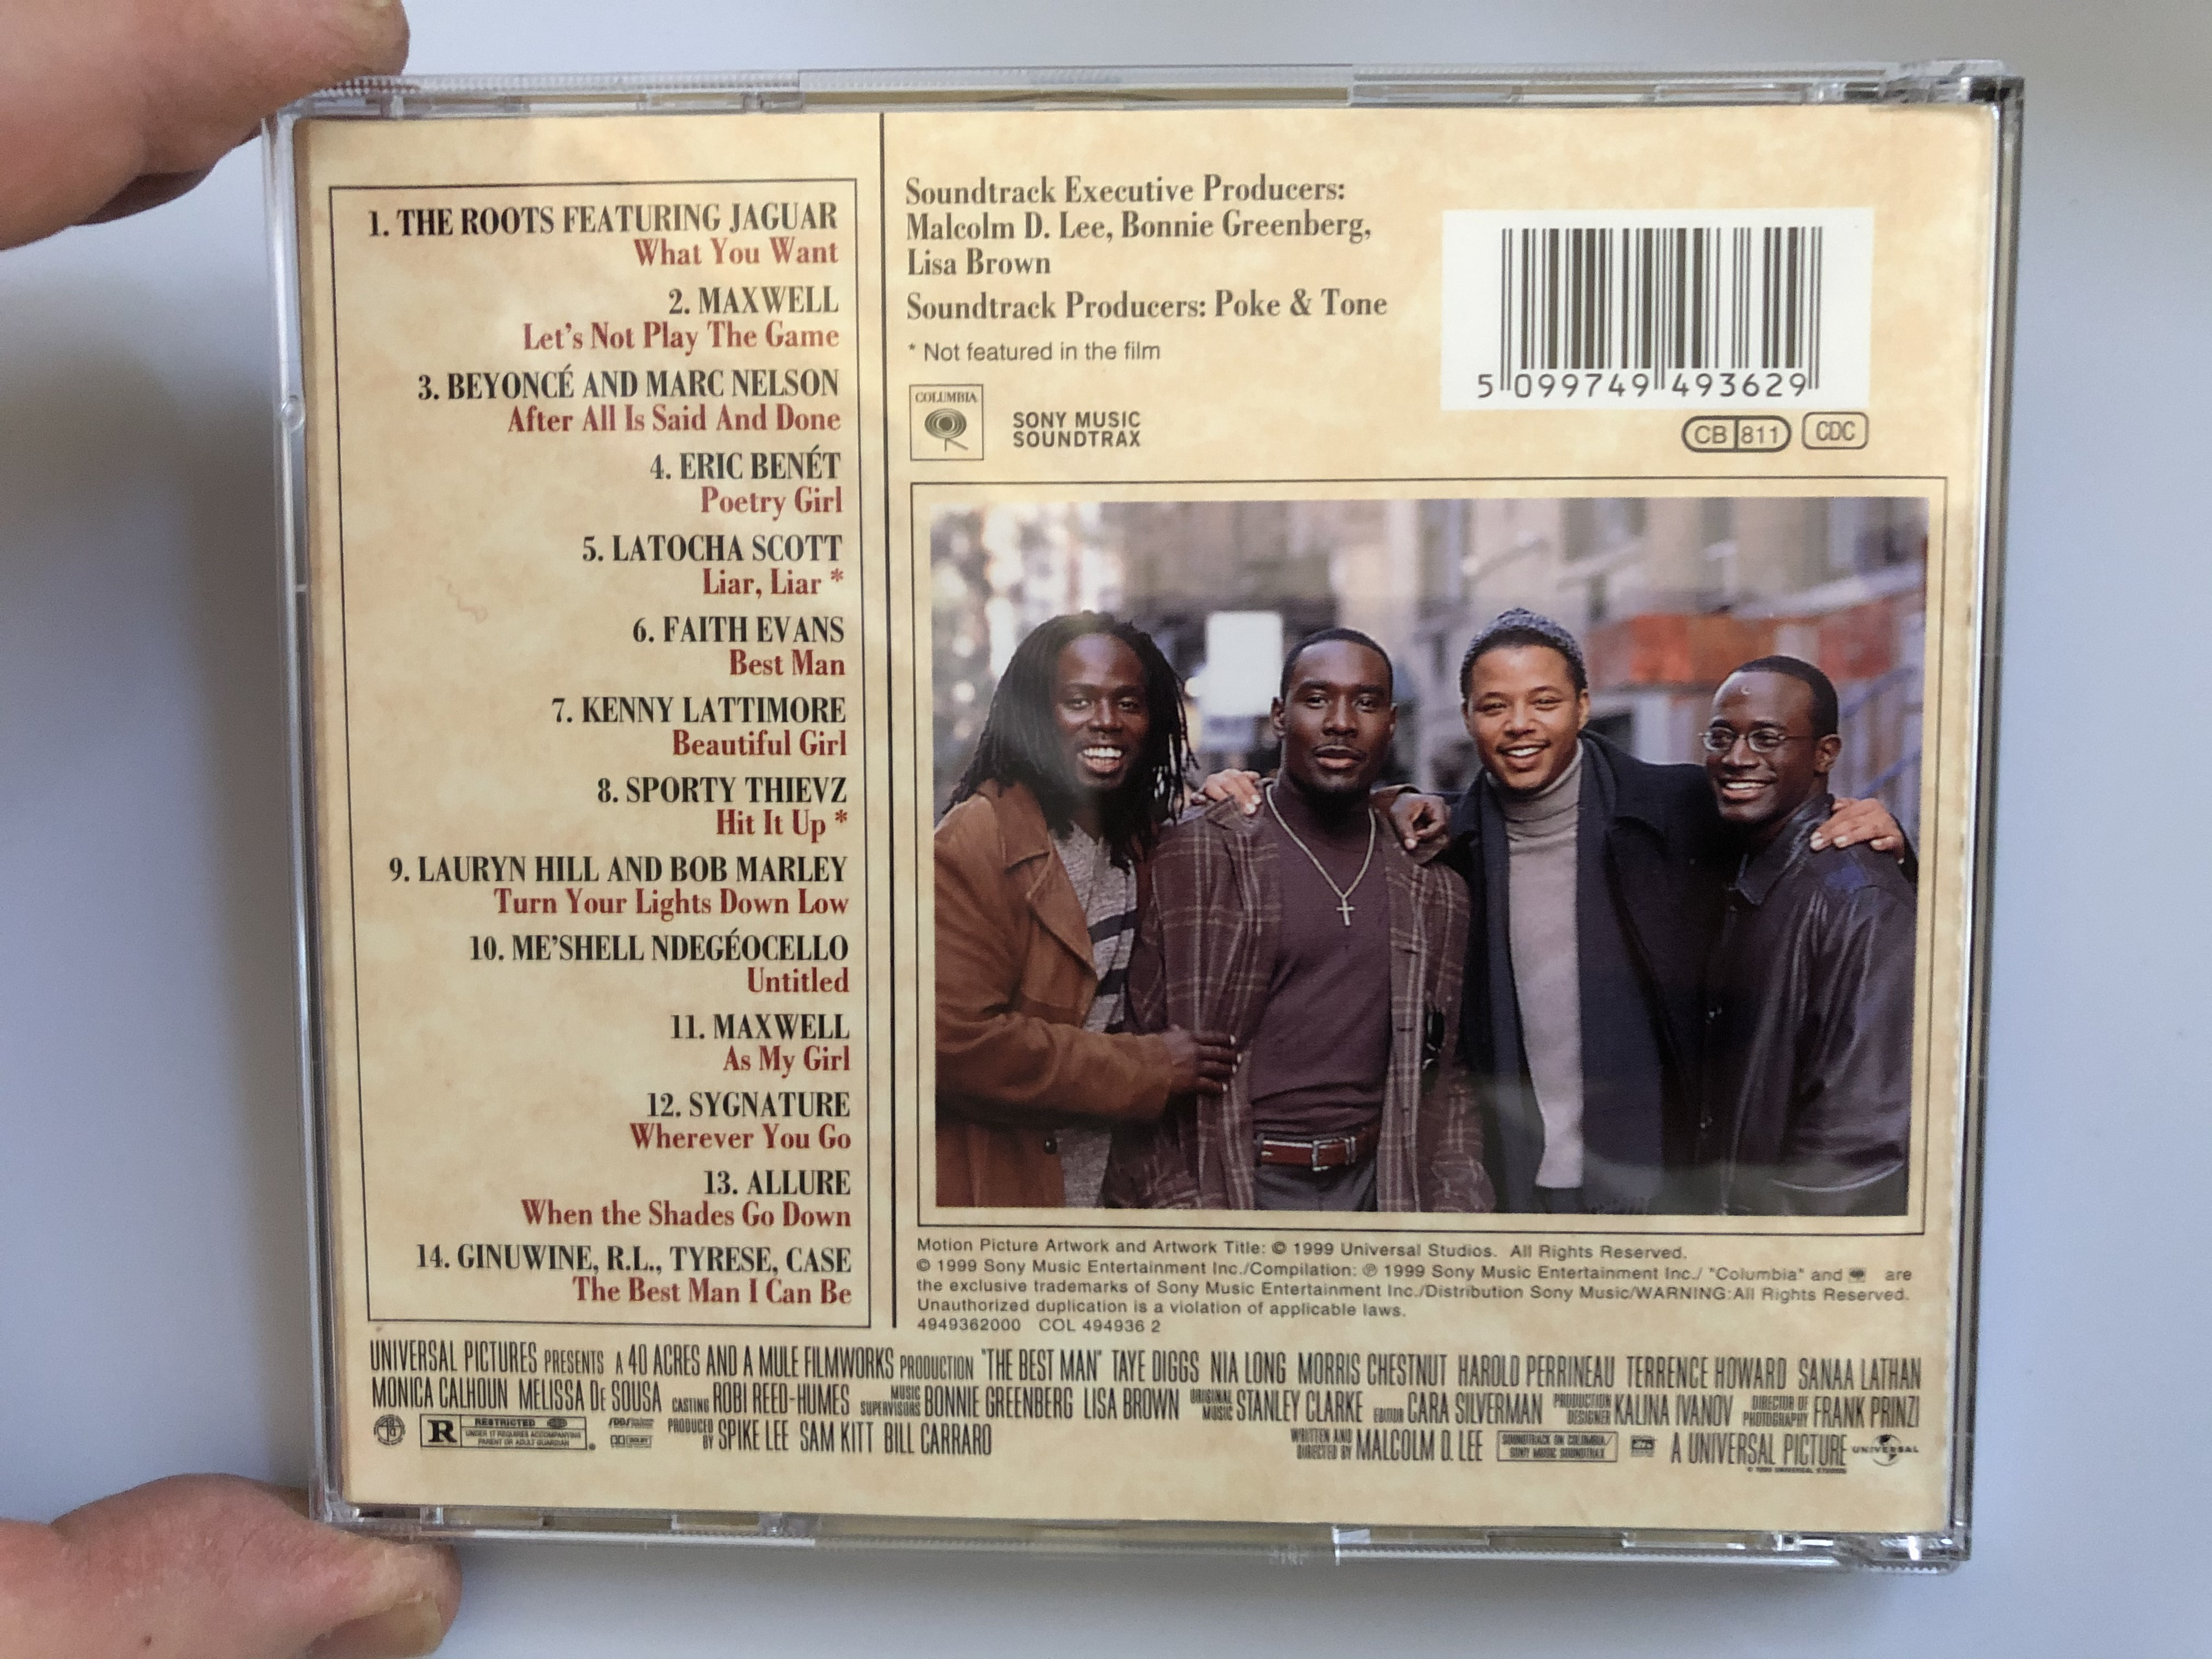 the-best-man-music-from-the-motion-picture-maxwell-lauryn-hill-and-bob-marley-the-roots-featuring-jaguar-wright-beyonc-and-marc-nelson-ginuwine-rl-tyrese-case-faith-evans-eric-ben.jpg